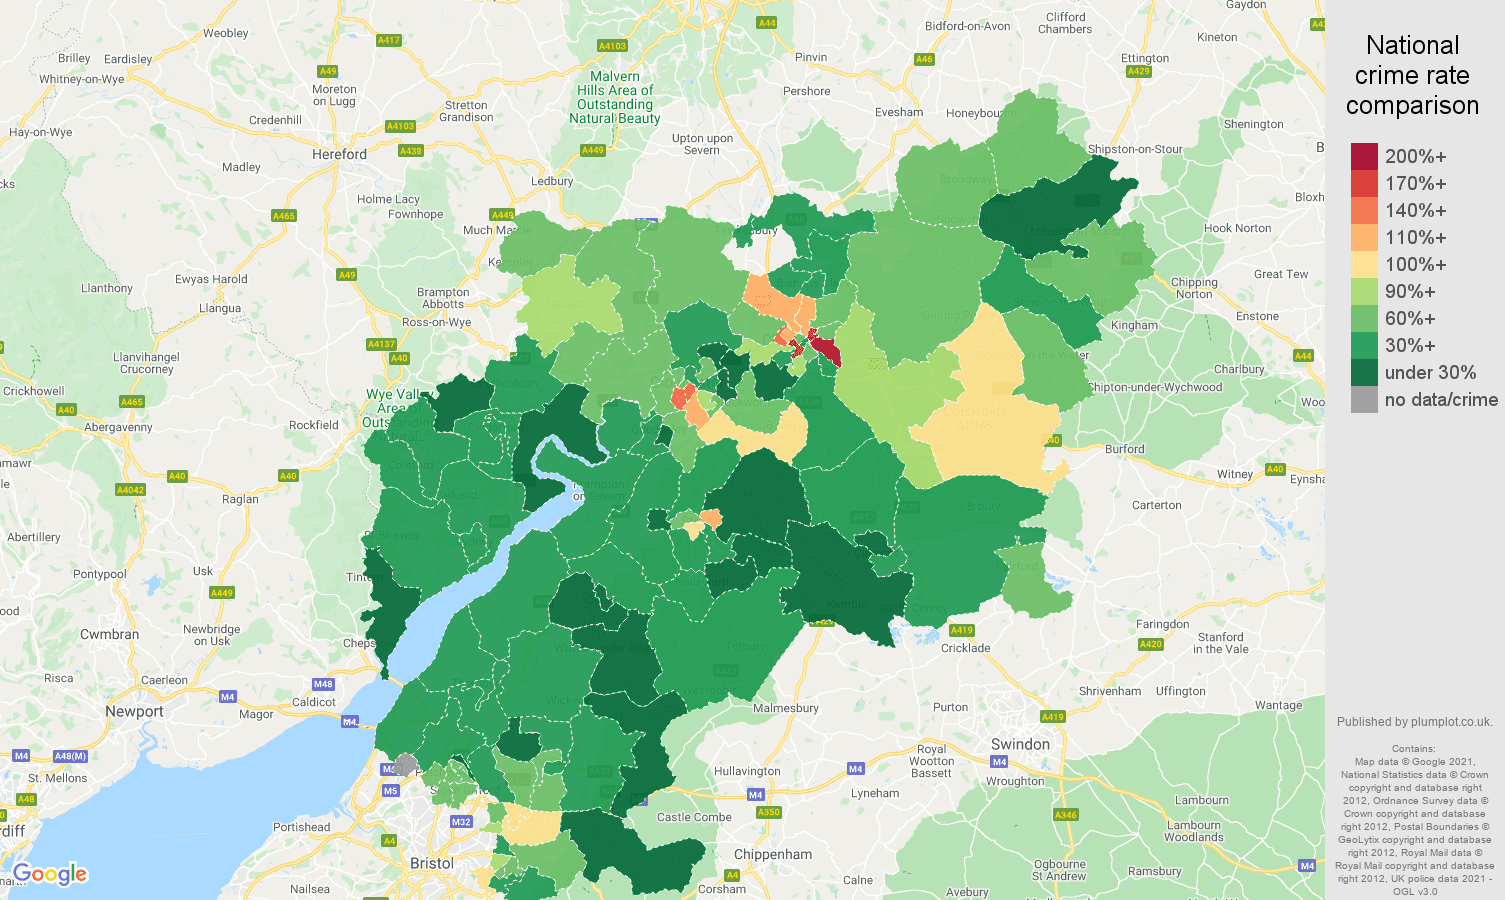 Gloucestershire vehicle crime rate comparison map